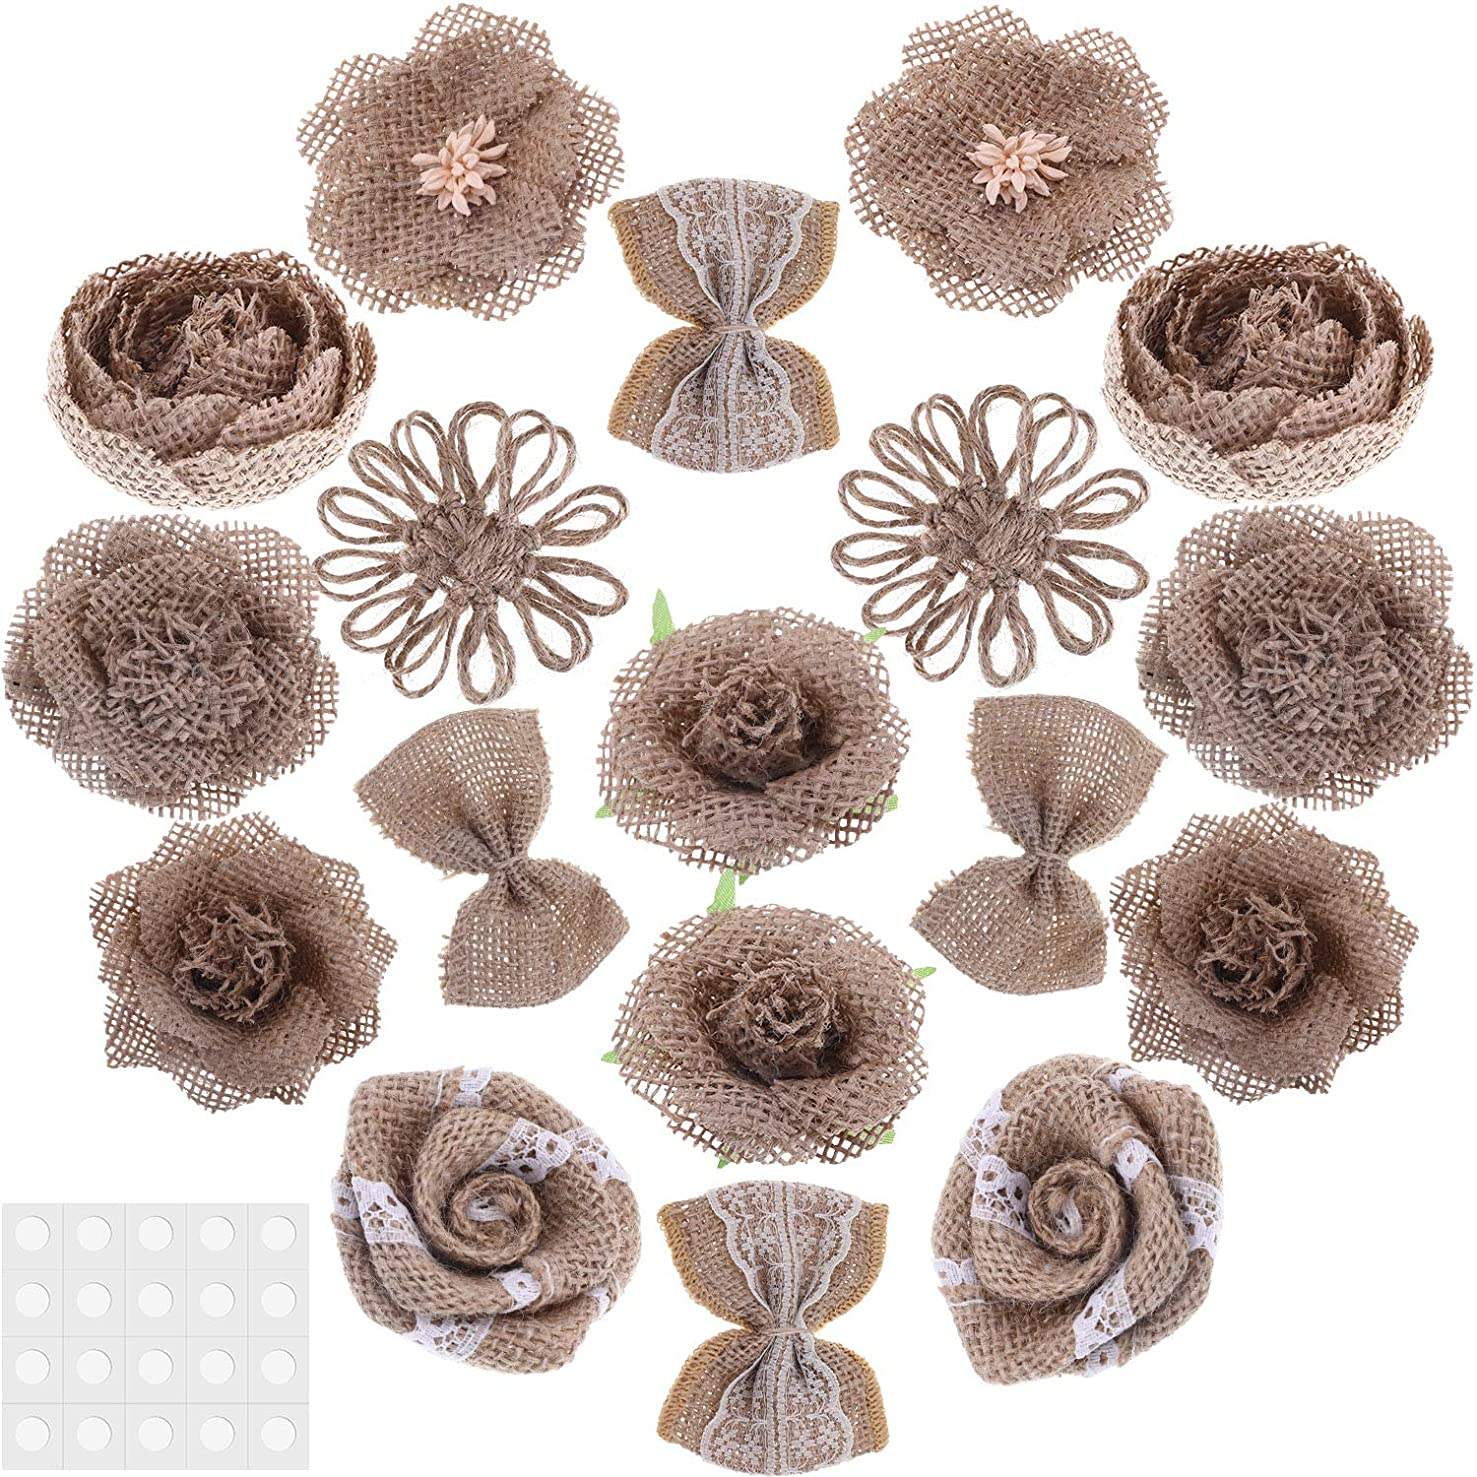 Tatuo 18 Pieces Burlap Flowers Rustic Lace Flower Bow Knot Roses with Adhesive Glue Point for DIY Craft Bouquets Home Wedding Christmas Party Decoration